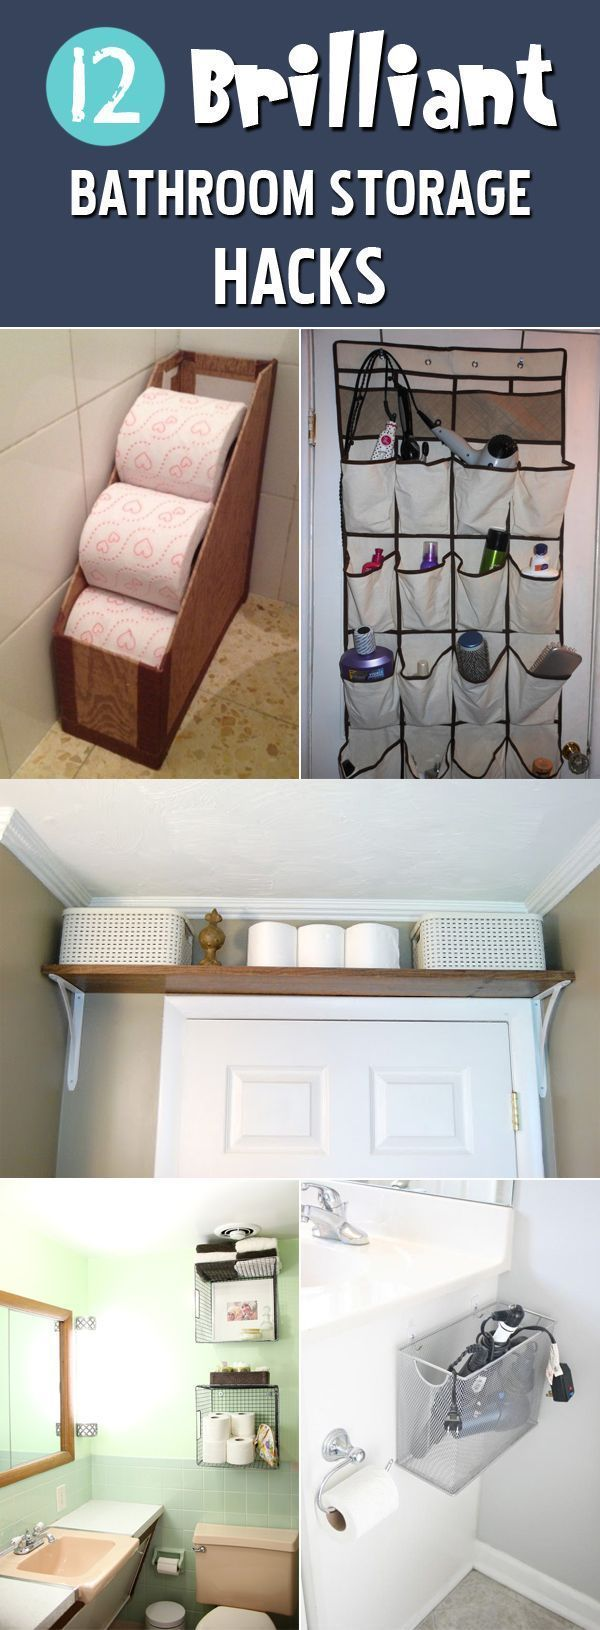 12 Genius Bathroom Storage Hacks. Try These ...